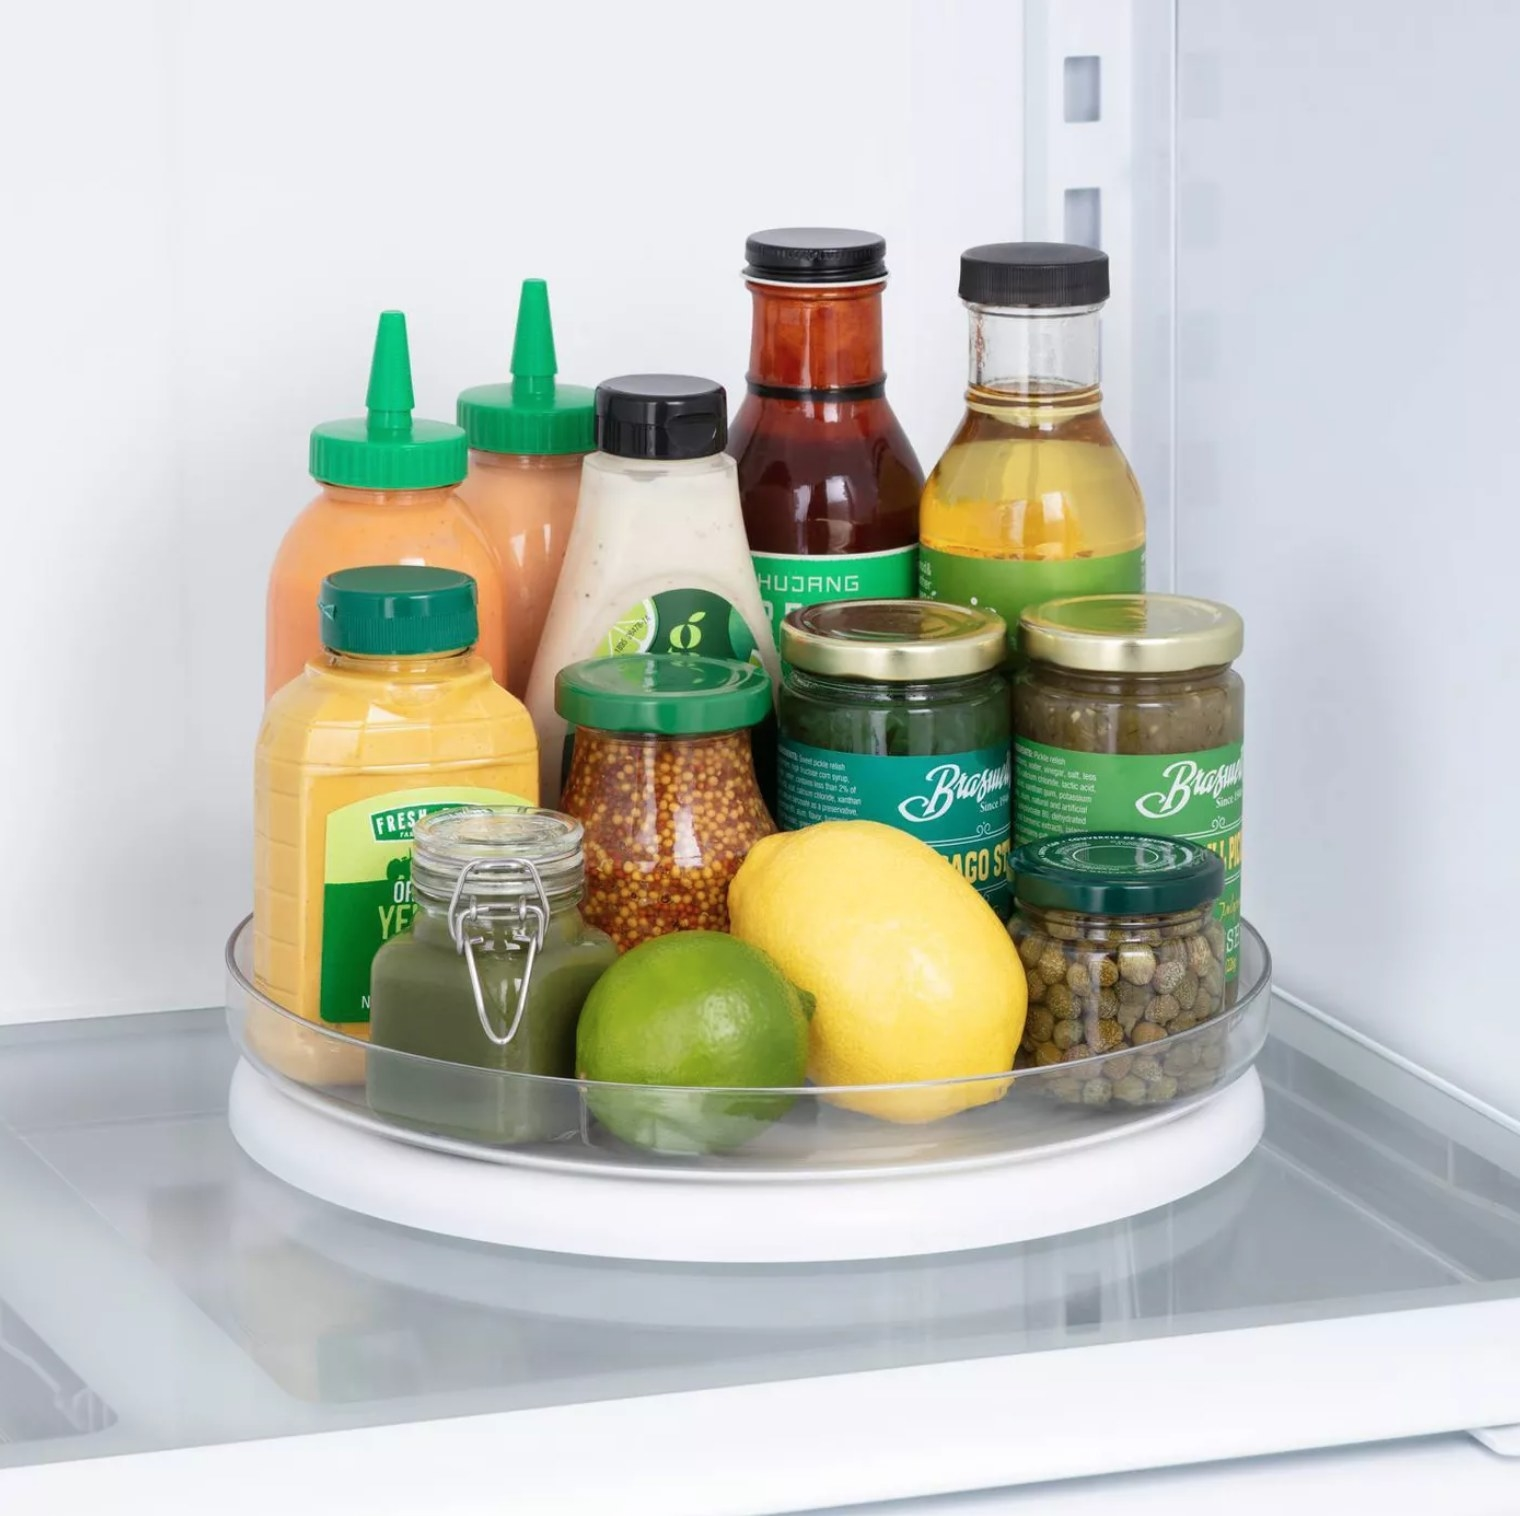 the turntable with condiments in the fridge